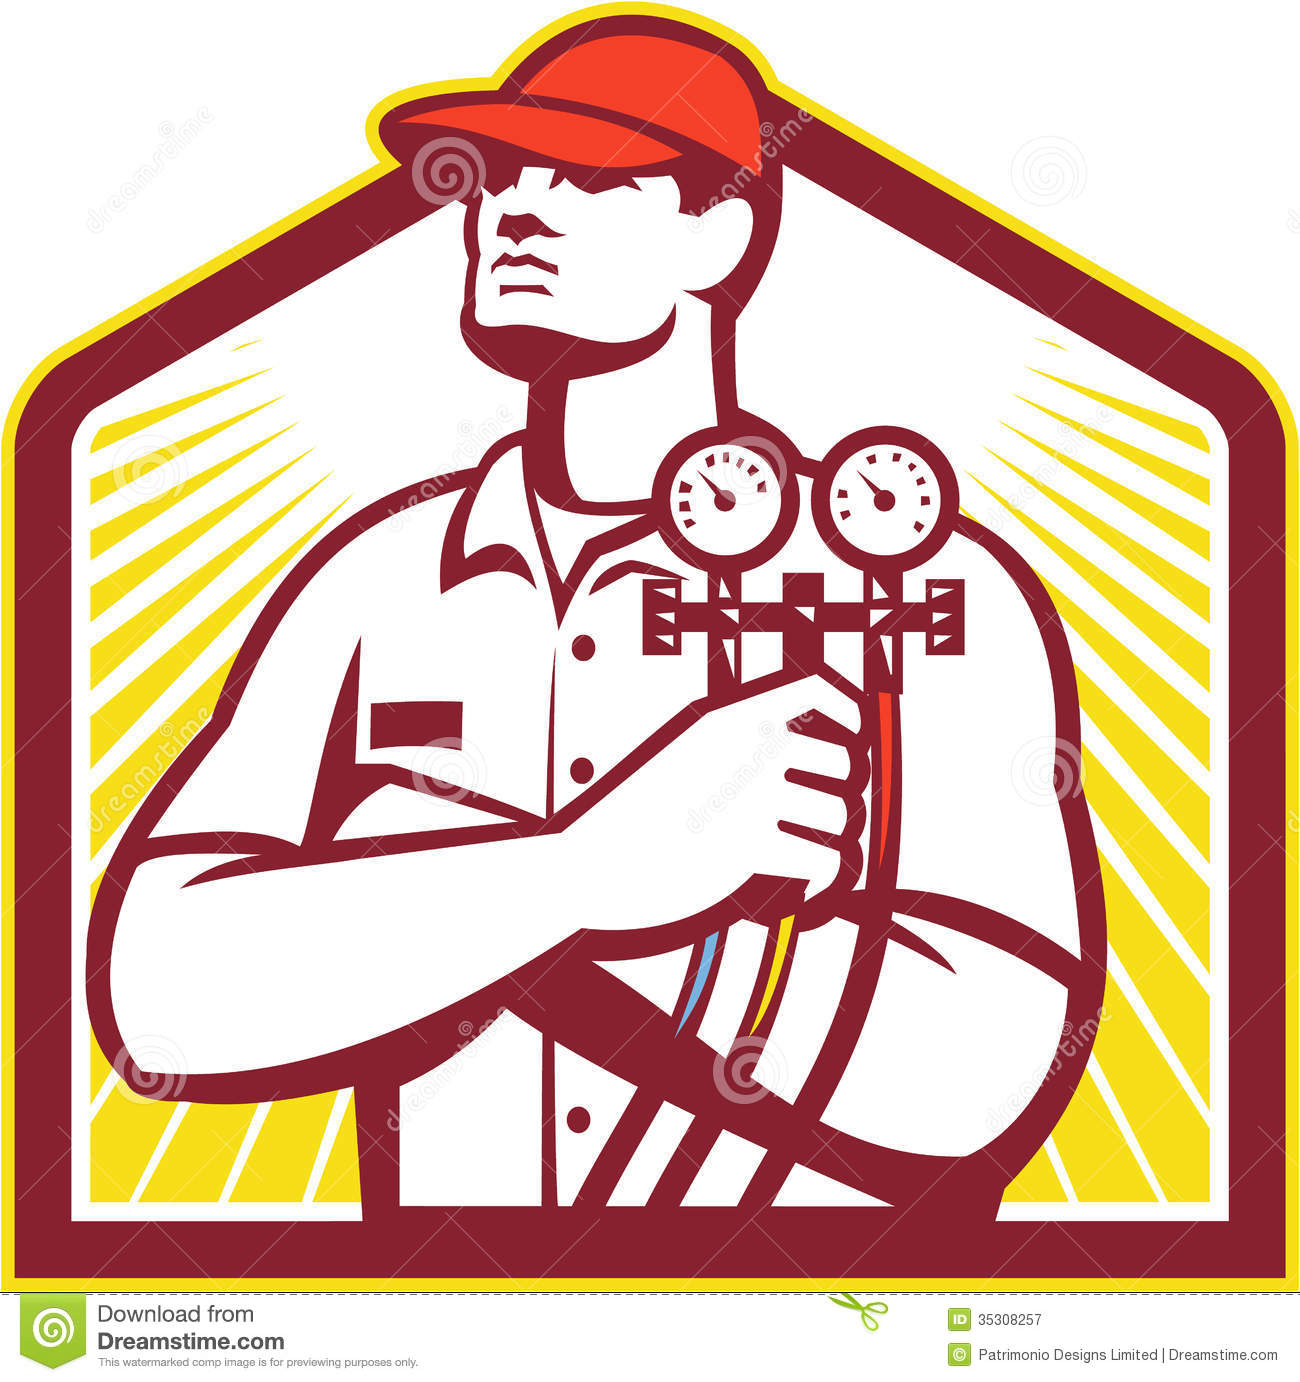 Heating And Cooling : Heating and cooling refrigeration technician retro stock